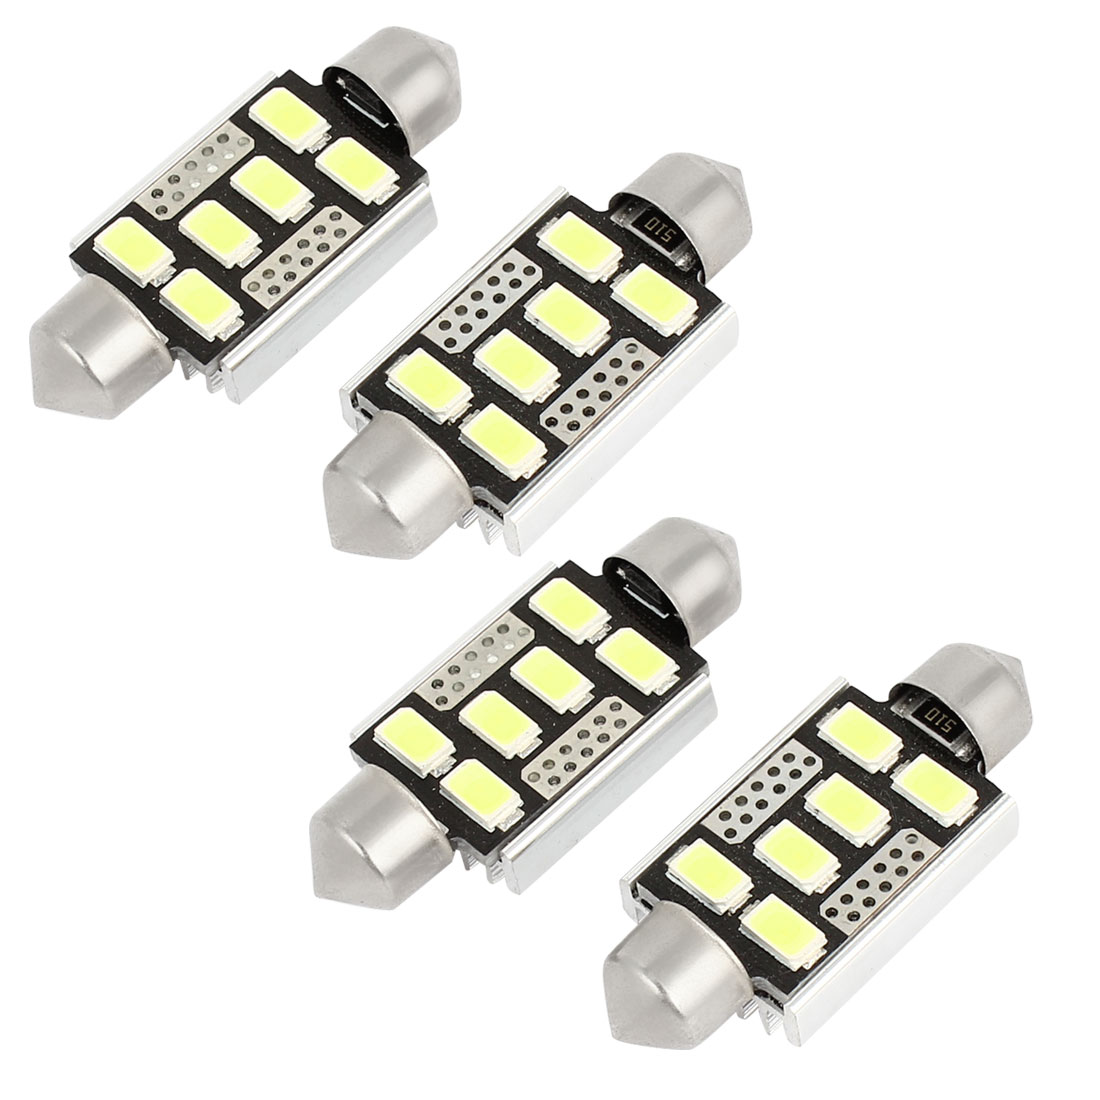 4 Pcs Car Auto White 5630 6 SMD LED Festoon Dome Light Roof Lamp Bulb 39mm Internal